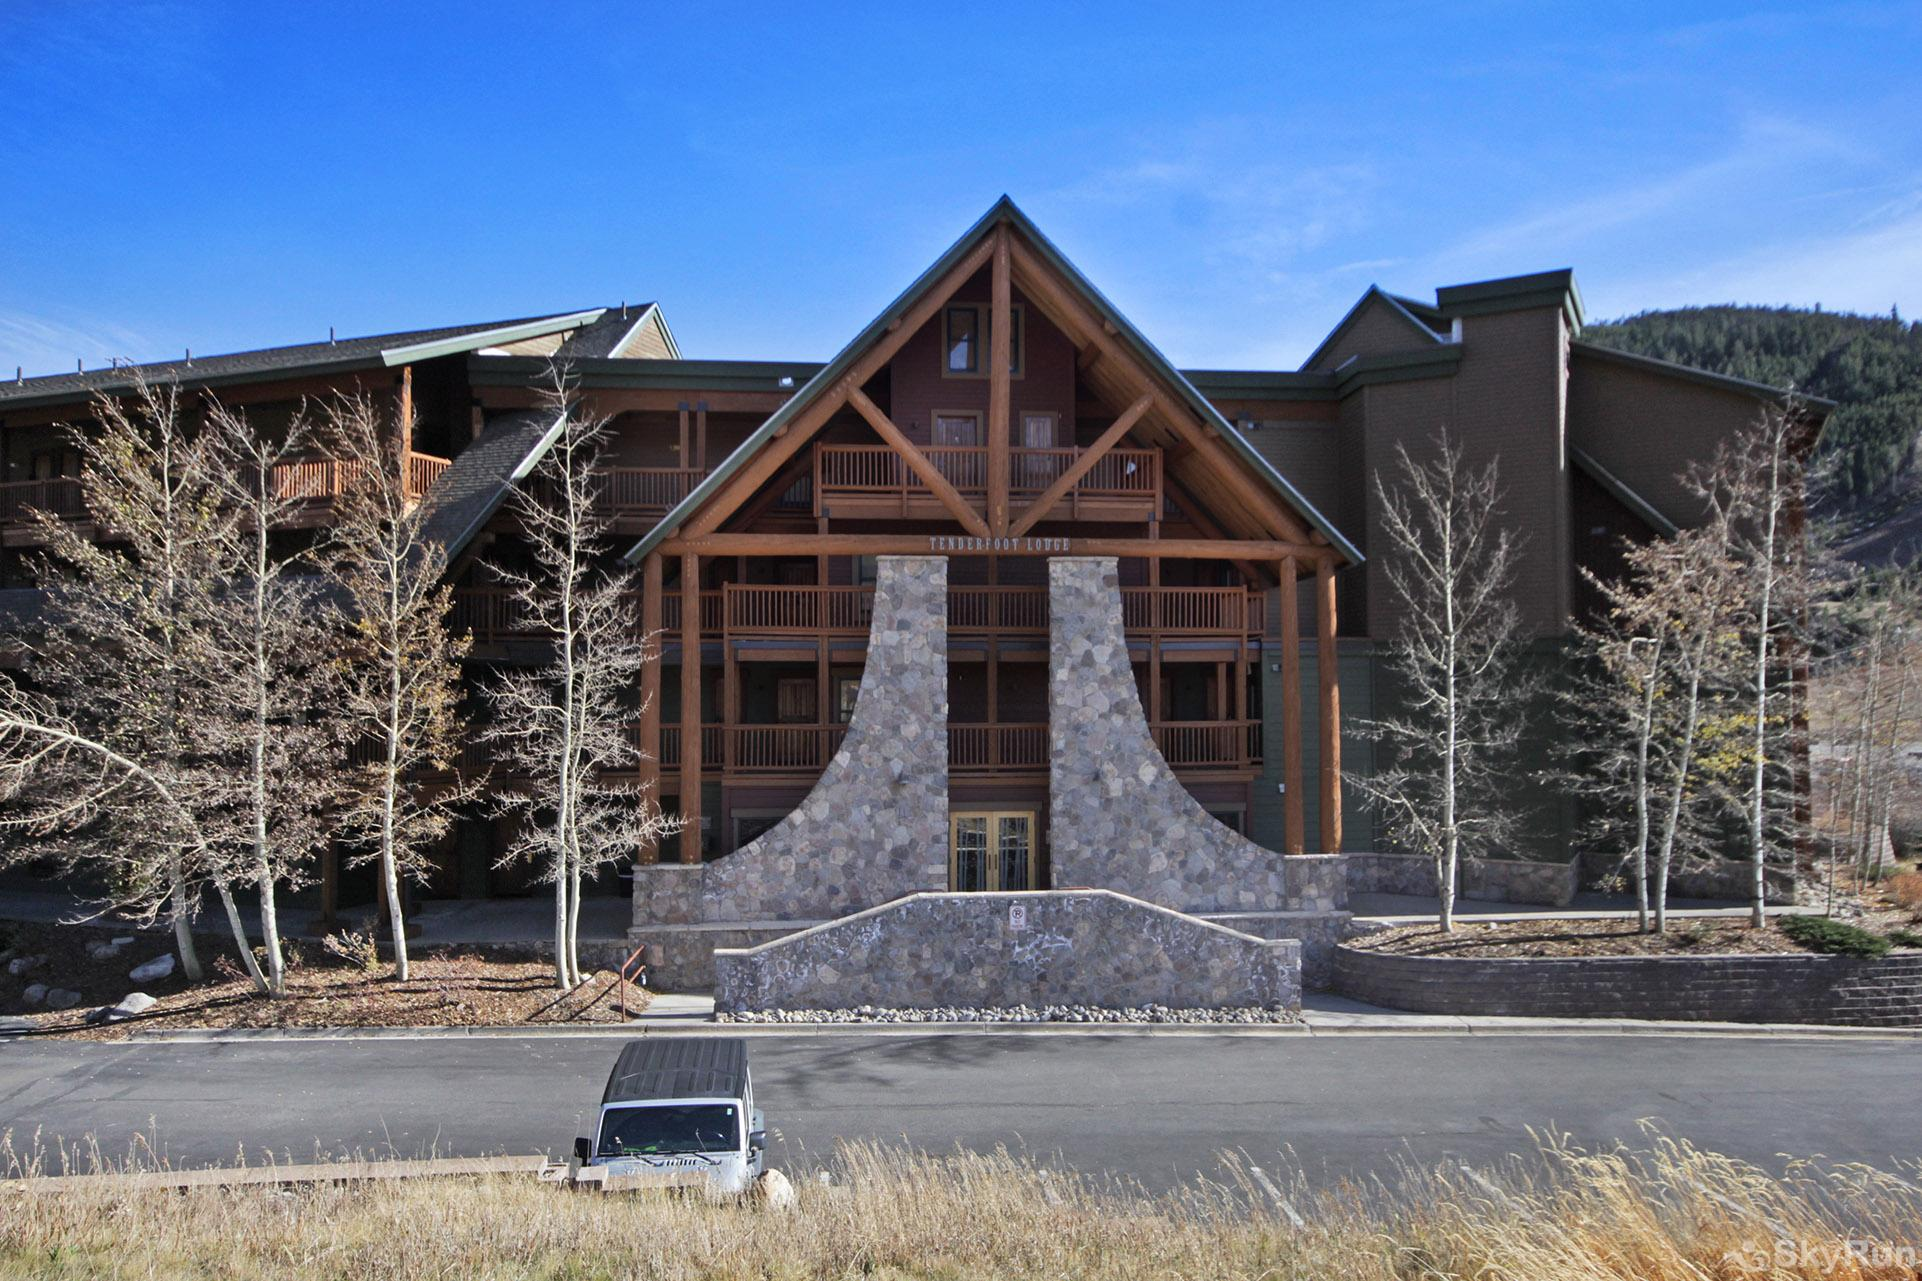 2609 Tenderfoot Lodge Exterior View